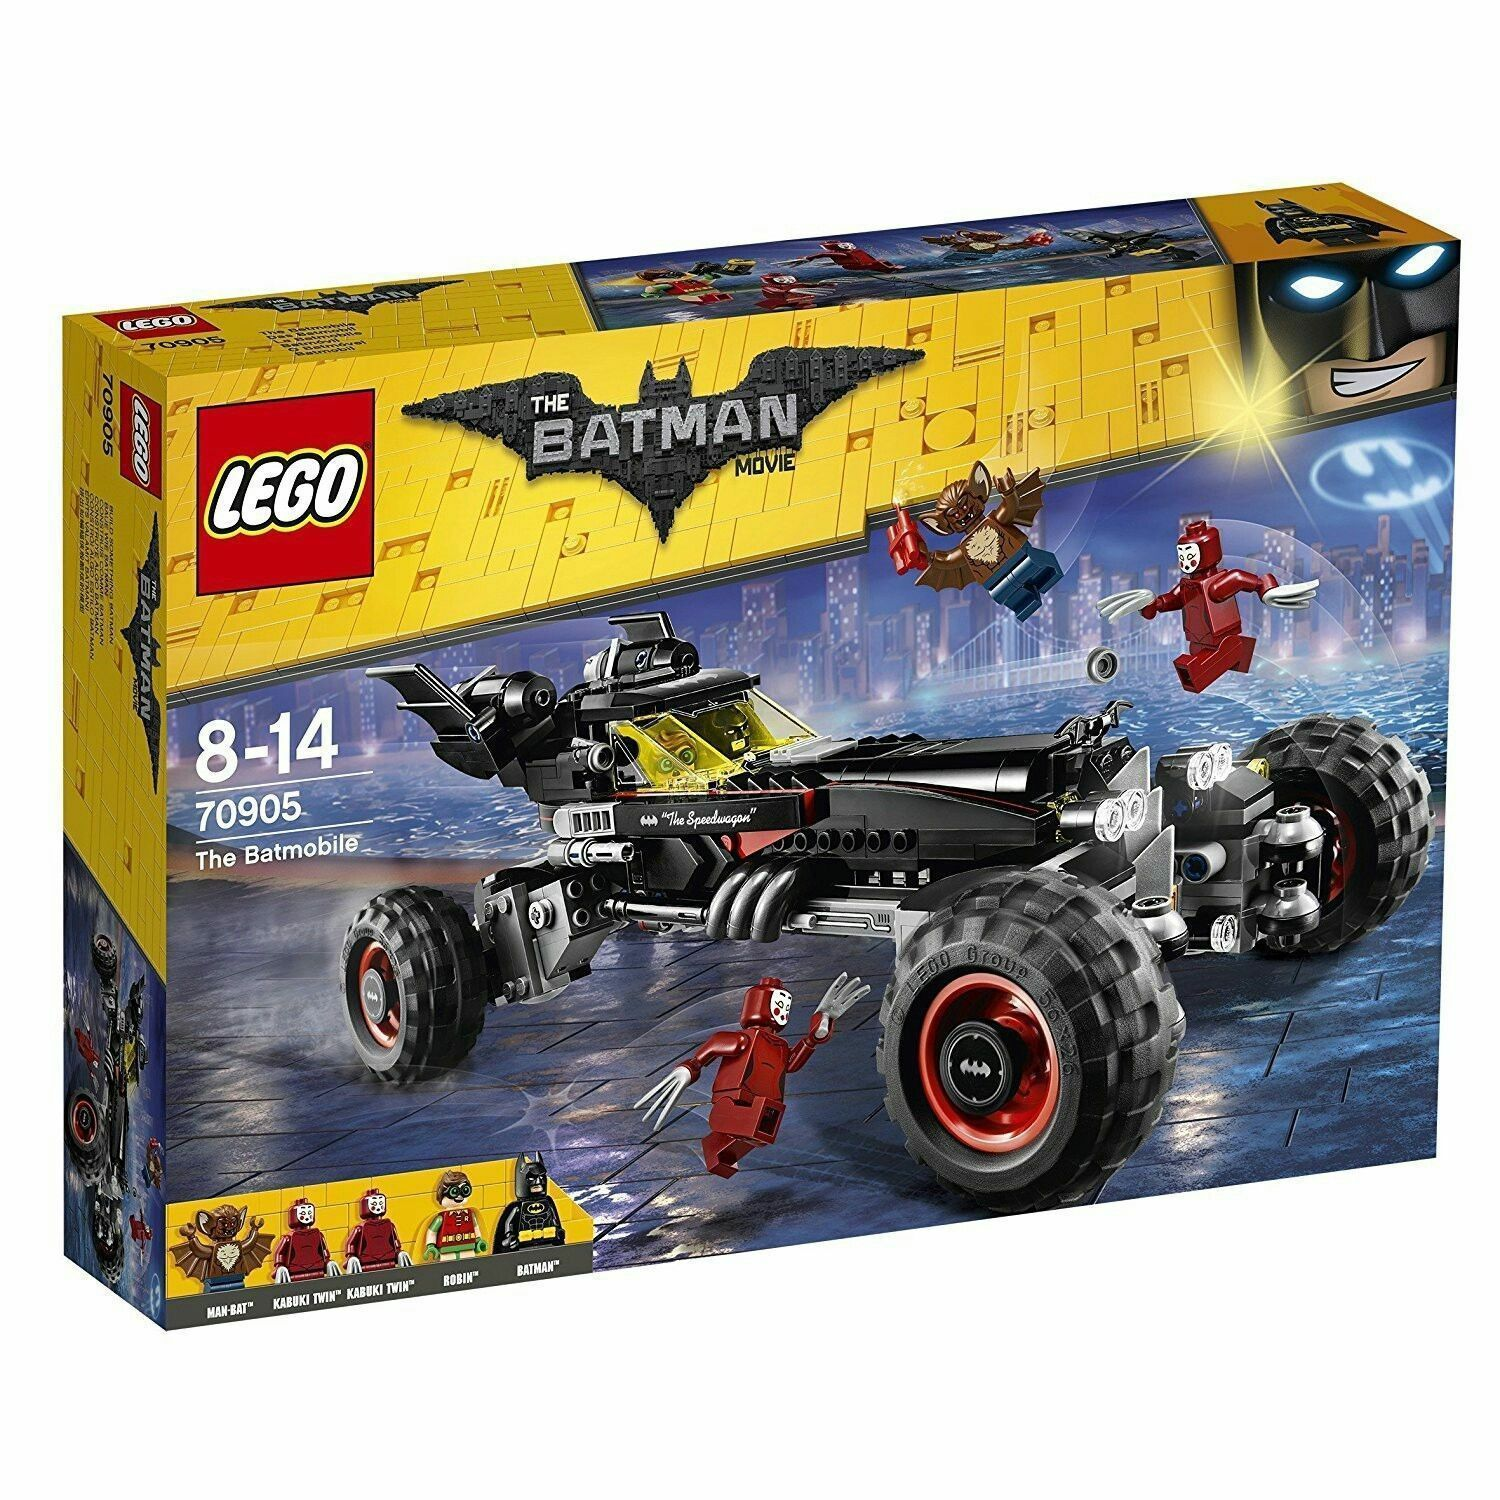 LEGO BATMAN MOVIE - 70905 - BATMOBILE - BRAND NEW & FACTORY SEALED 3